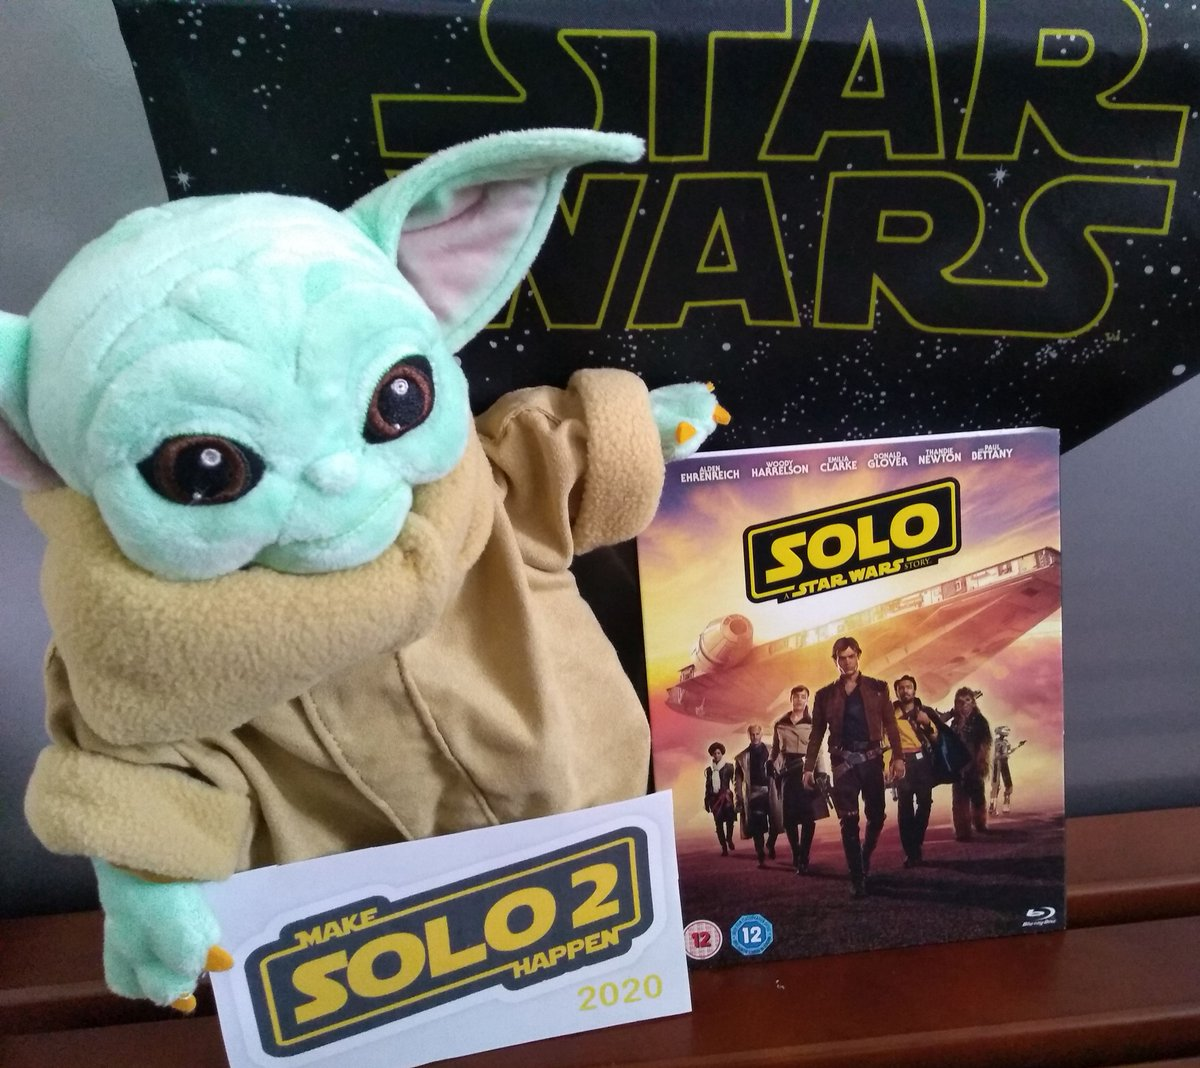 Don't disappoint The Child – Please help #MakeSolo2Happen @starwars @starwarsuk @disneyplus @DisneyPlusUK <br>http://pic.twitter.com/jSmLpRXd2M